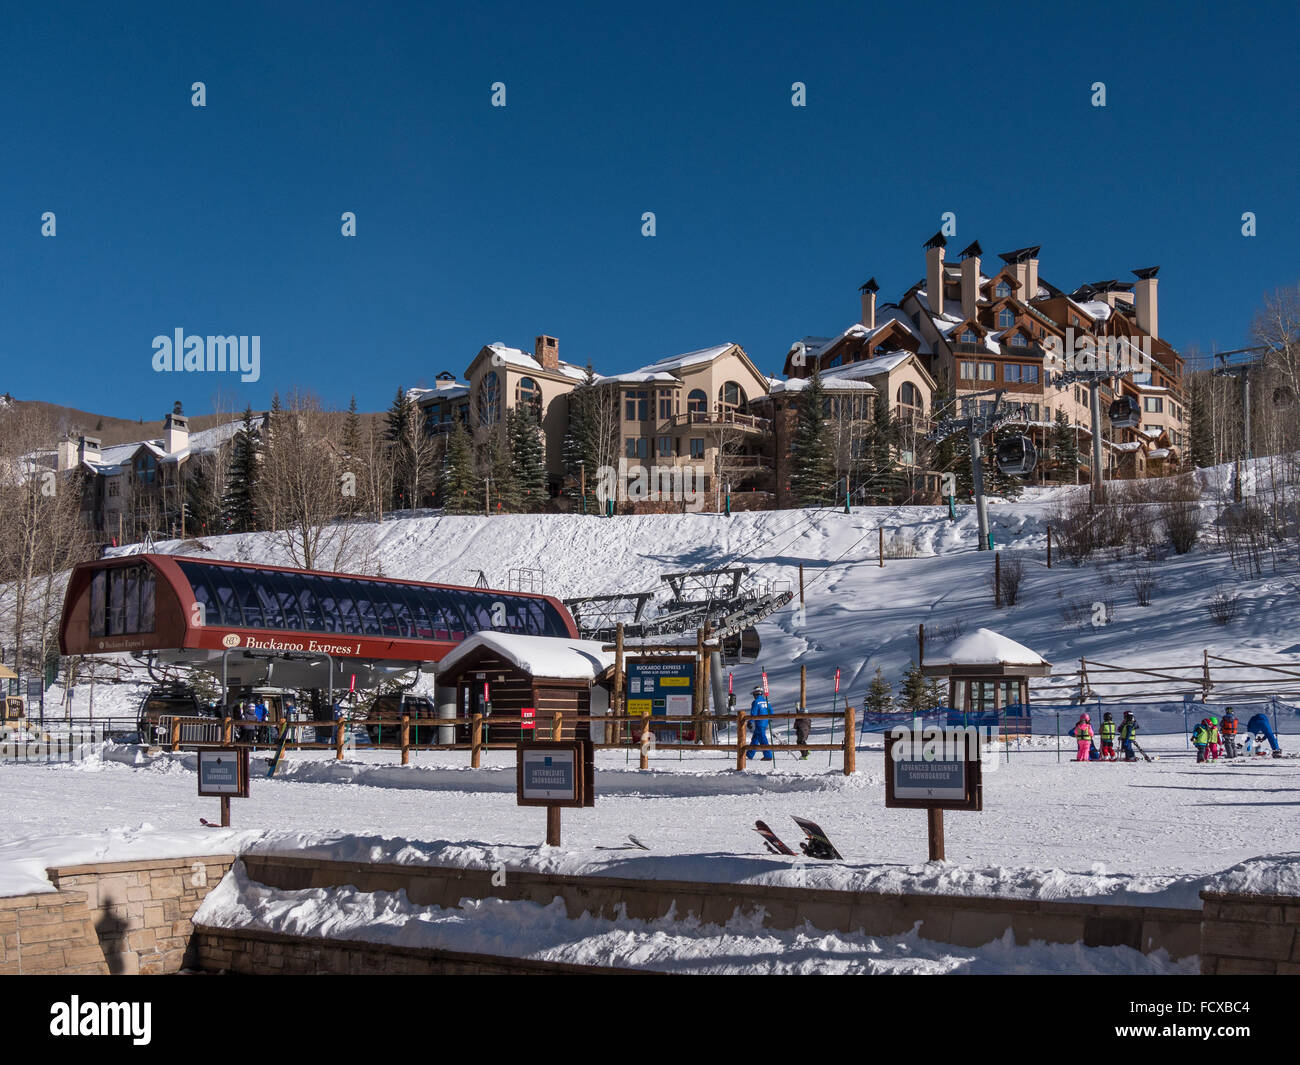 Base area and Buckaroo Express I gondola, Beaver Creek Ski Resort, Avon, Colorado. - Stock Image